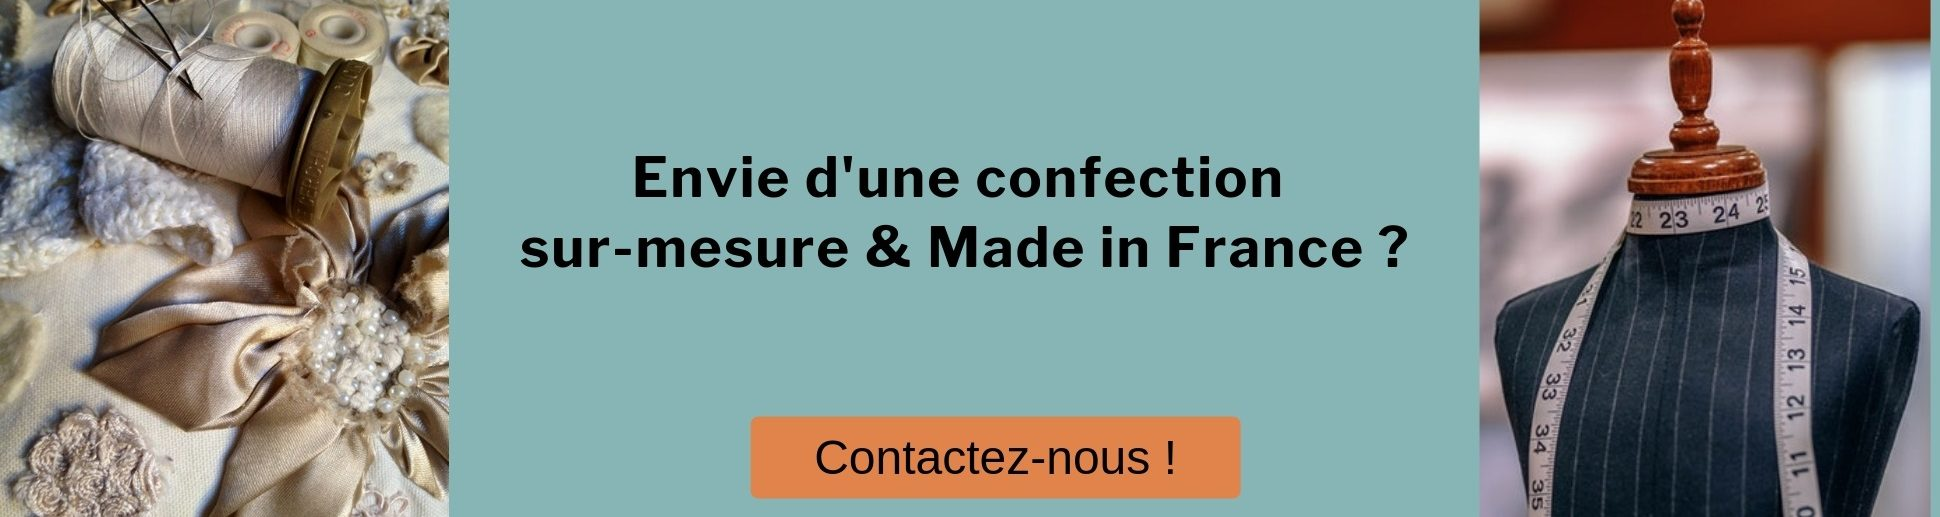 Ketten confection sur-mesure made in france